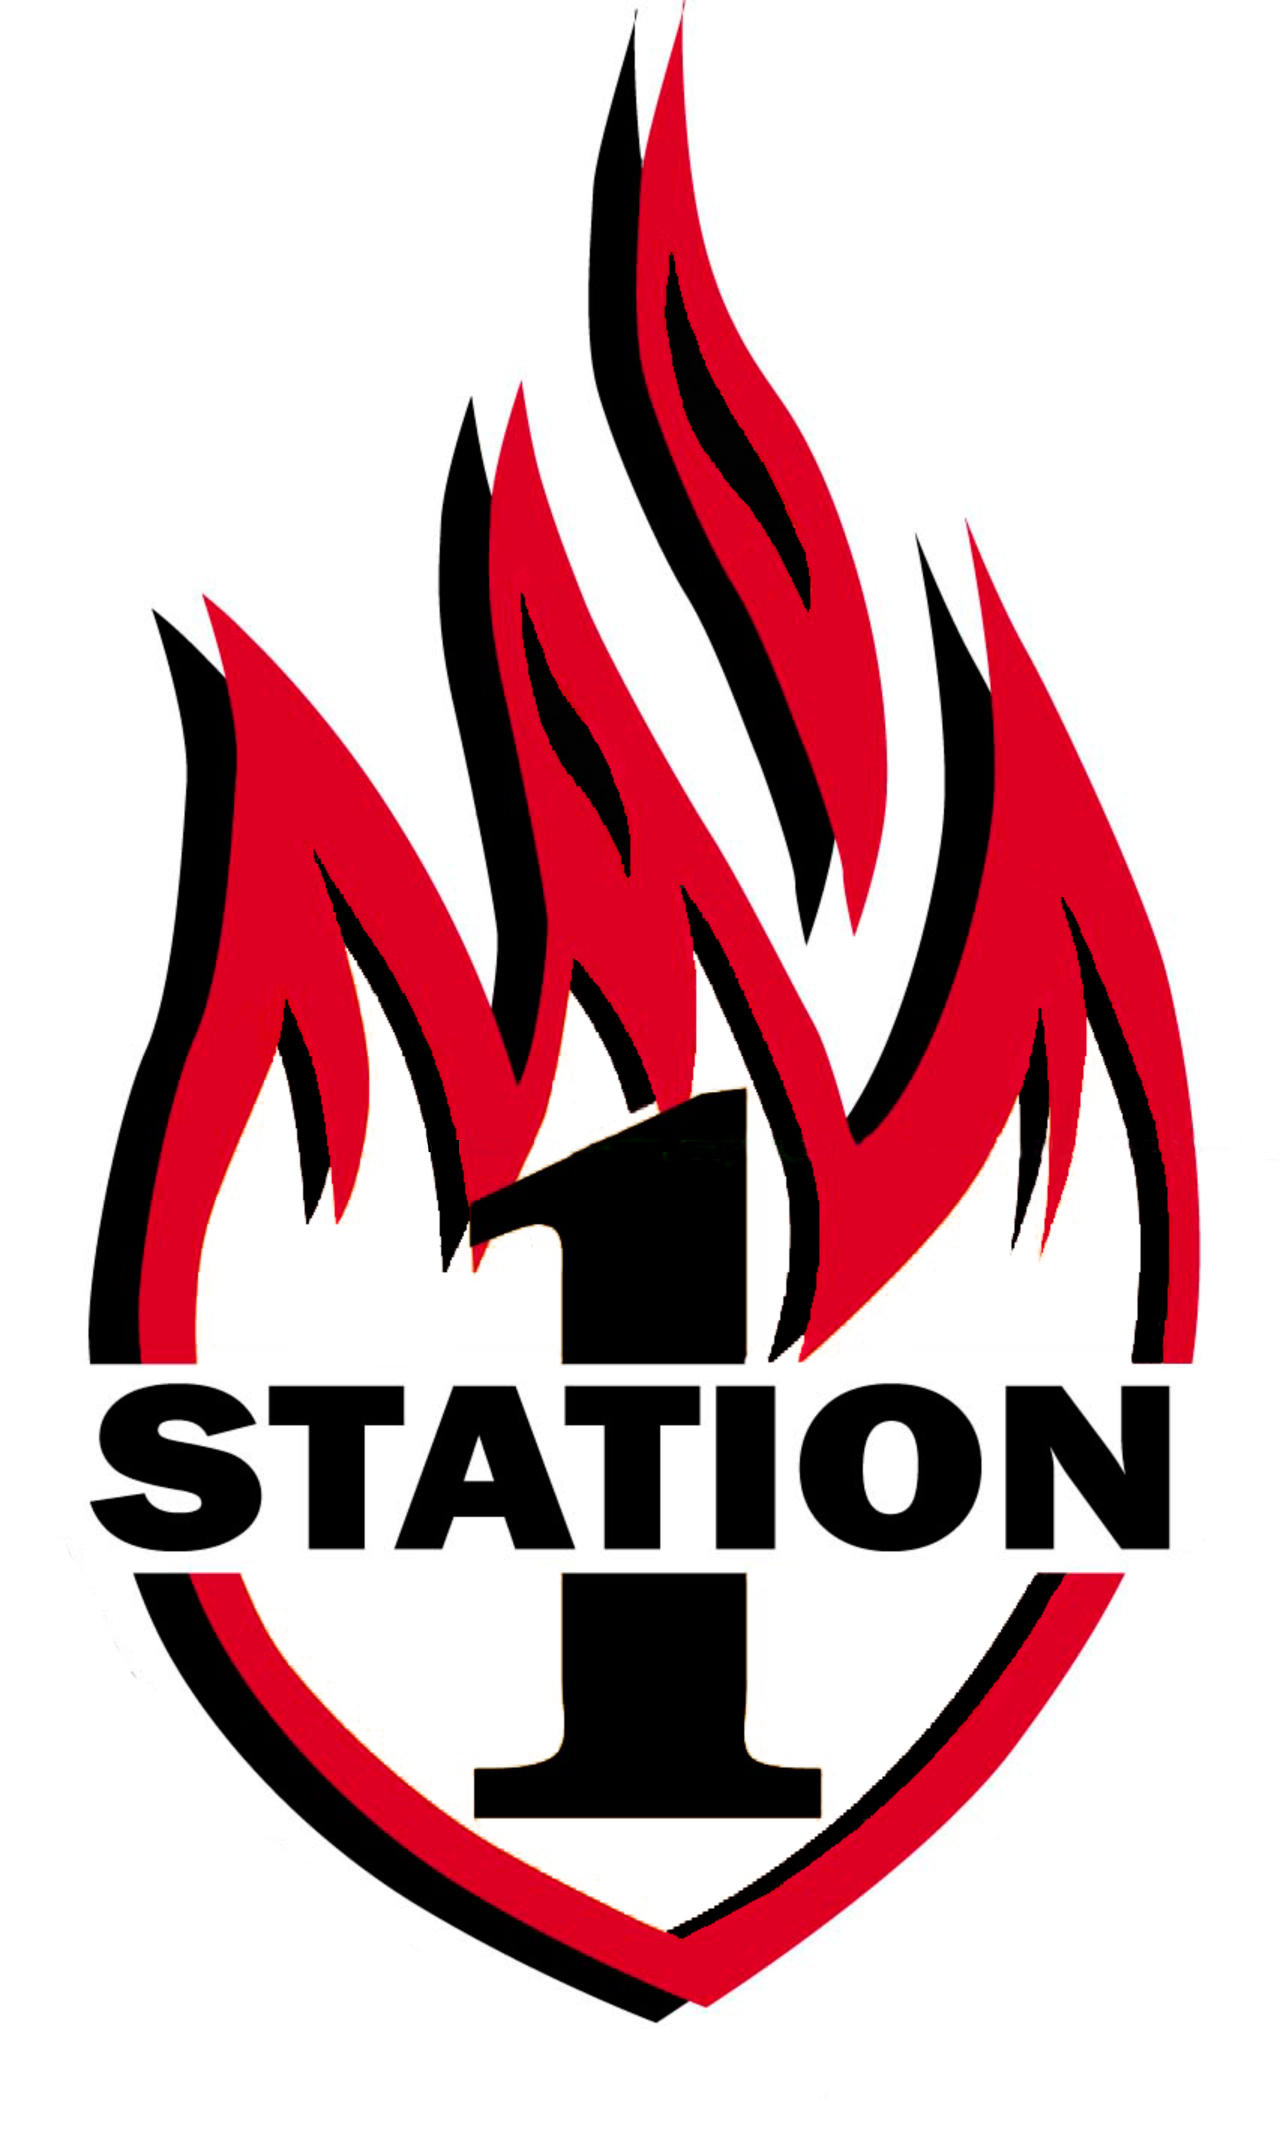 Station 1 Fire Protection image 4